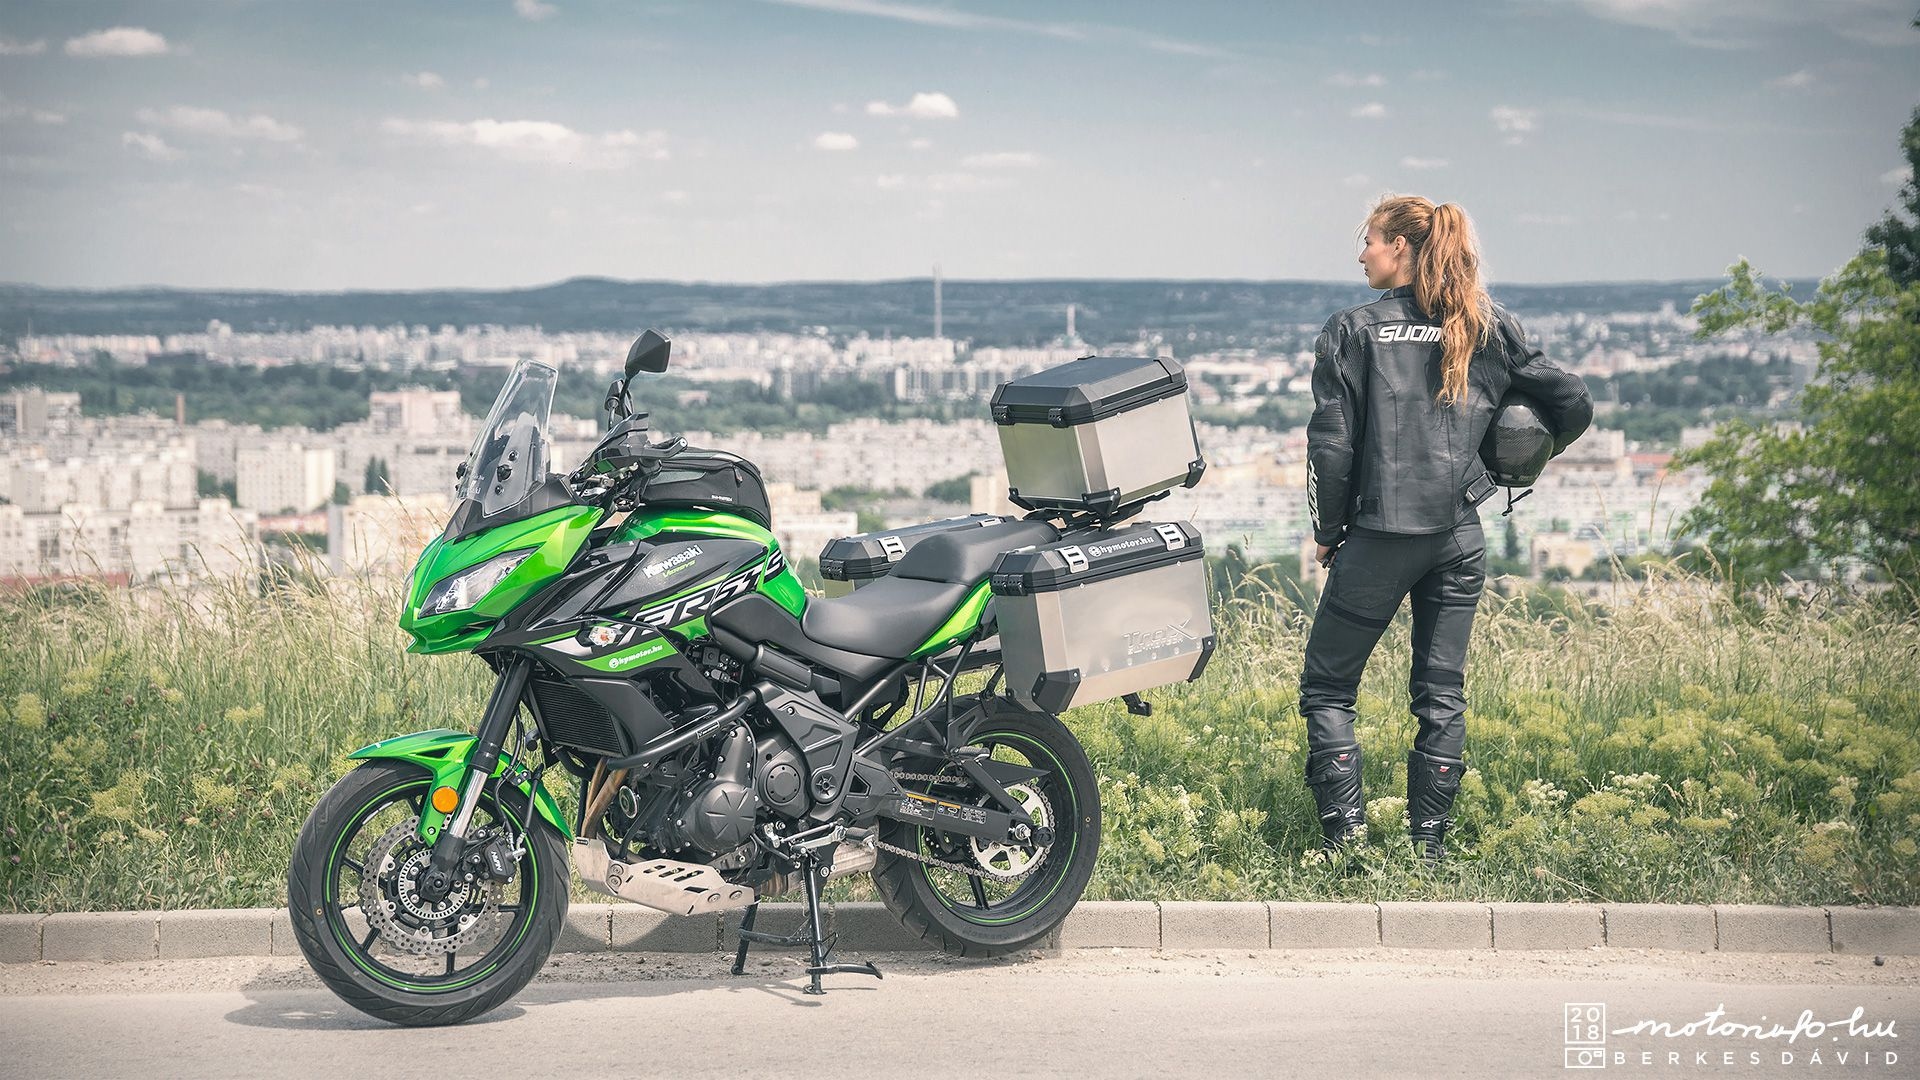 18 Images About Kawasaki Versys 650 Se Gt In Hd On